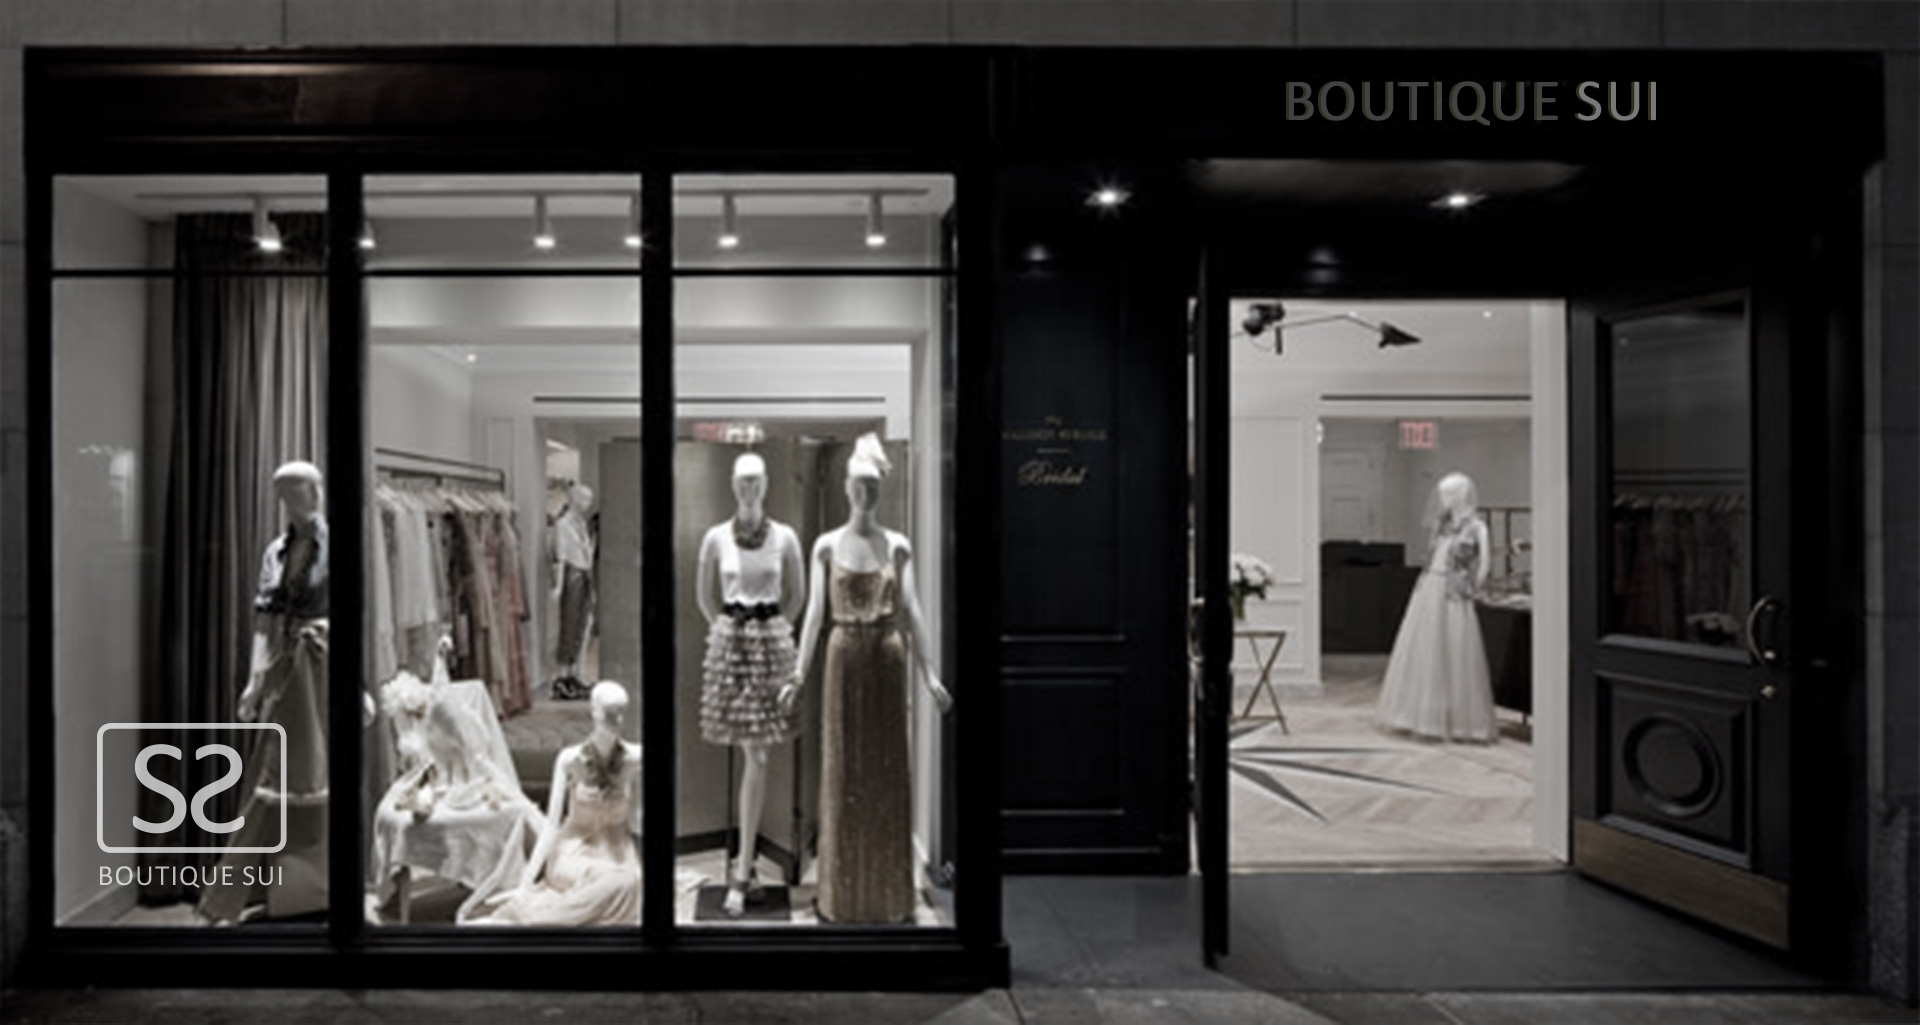 Boutique Sui logo on storefront